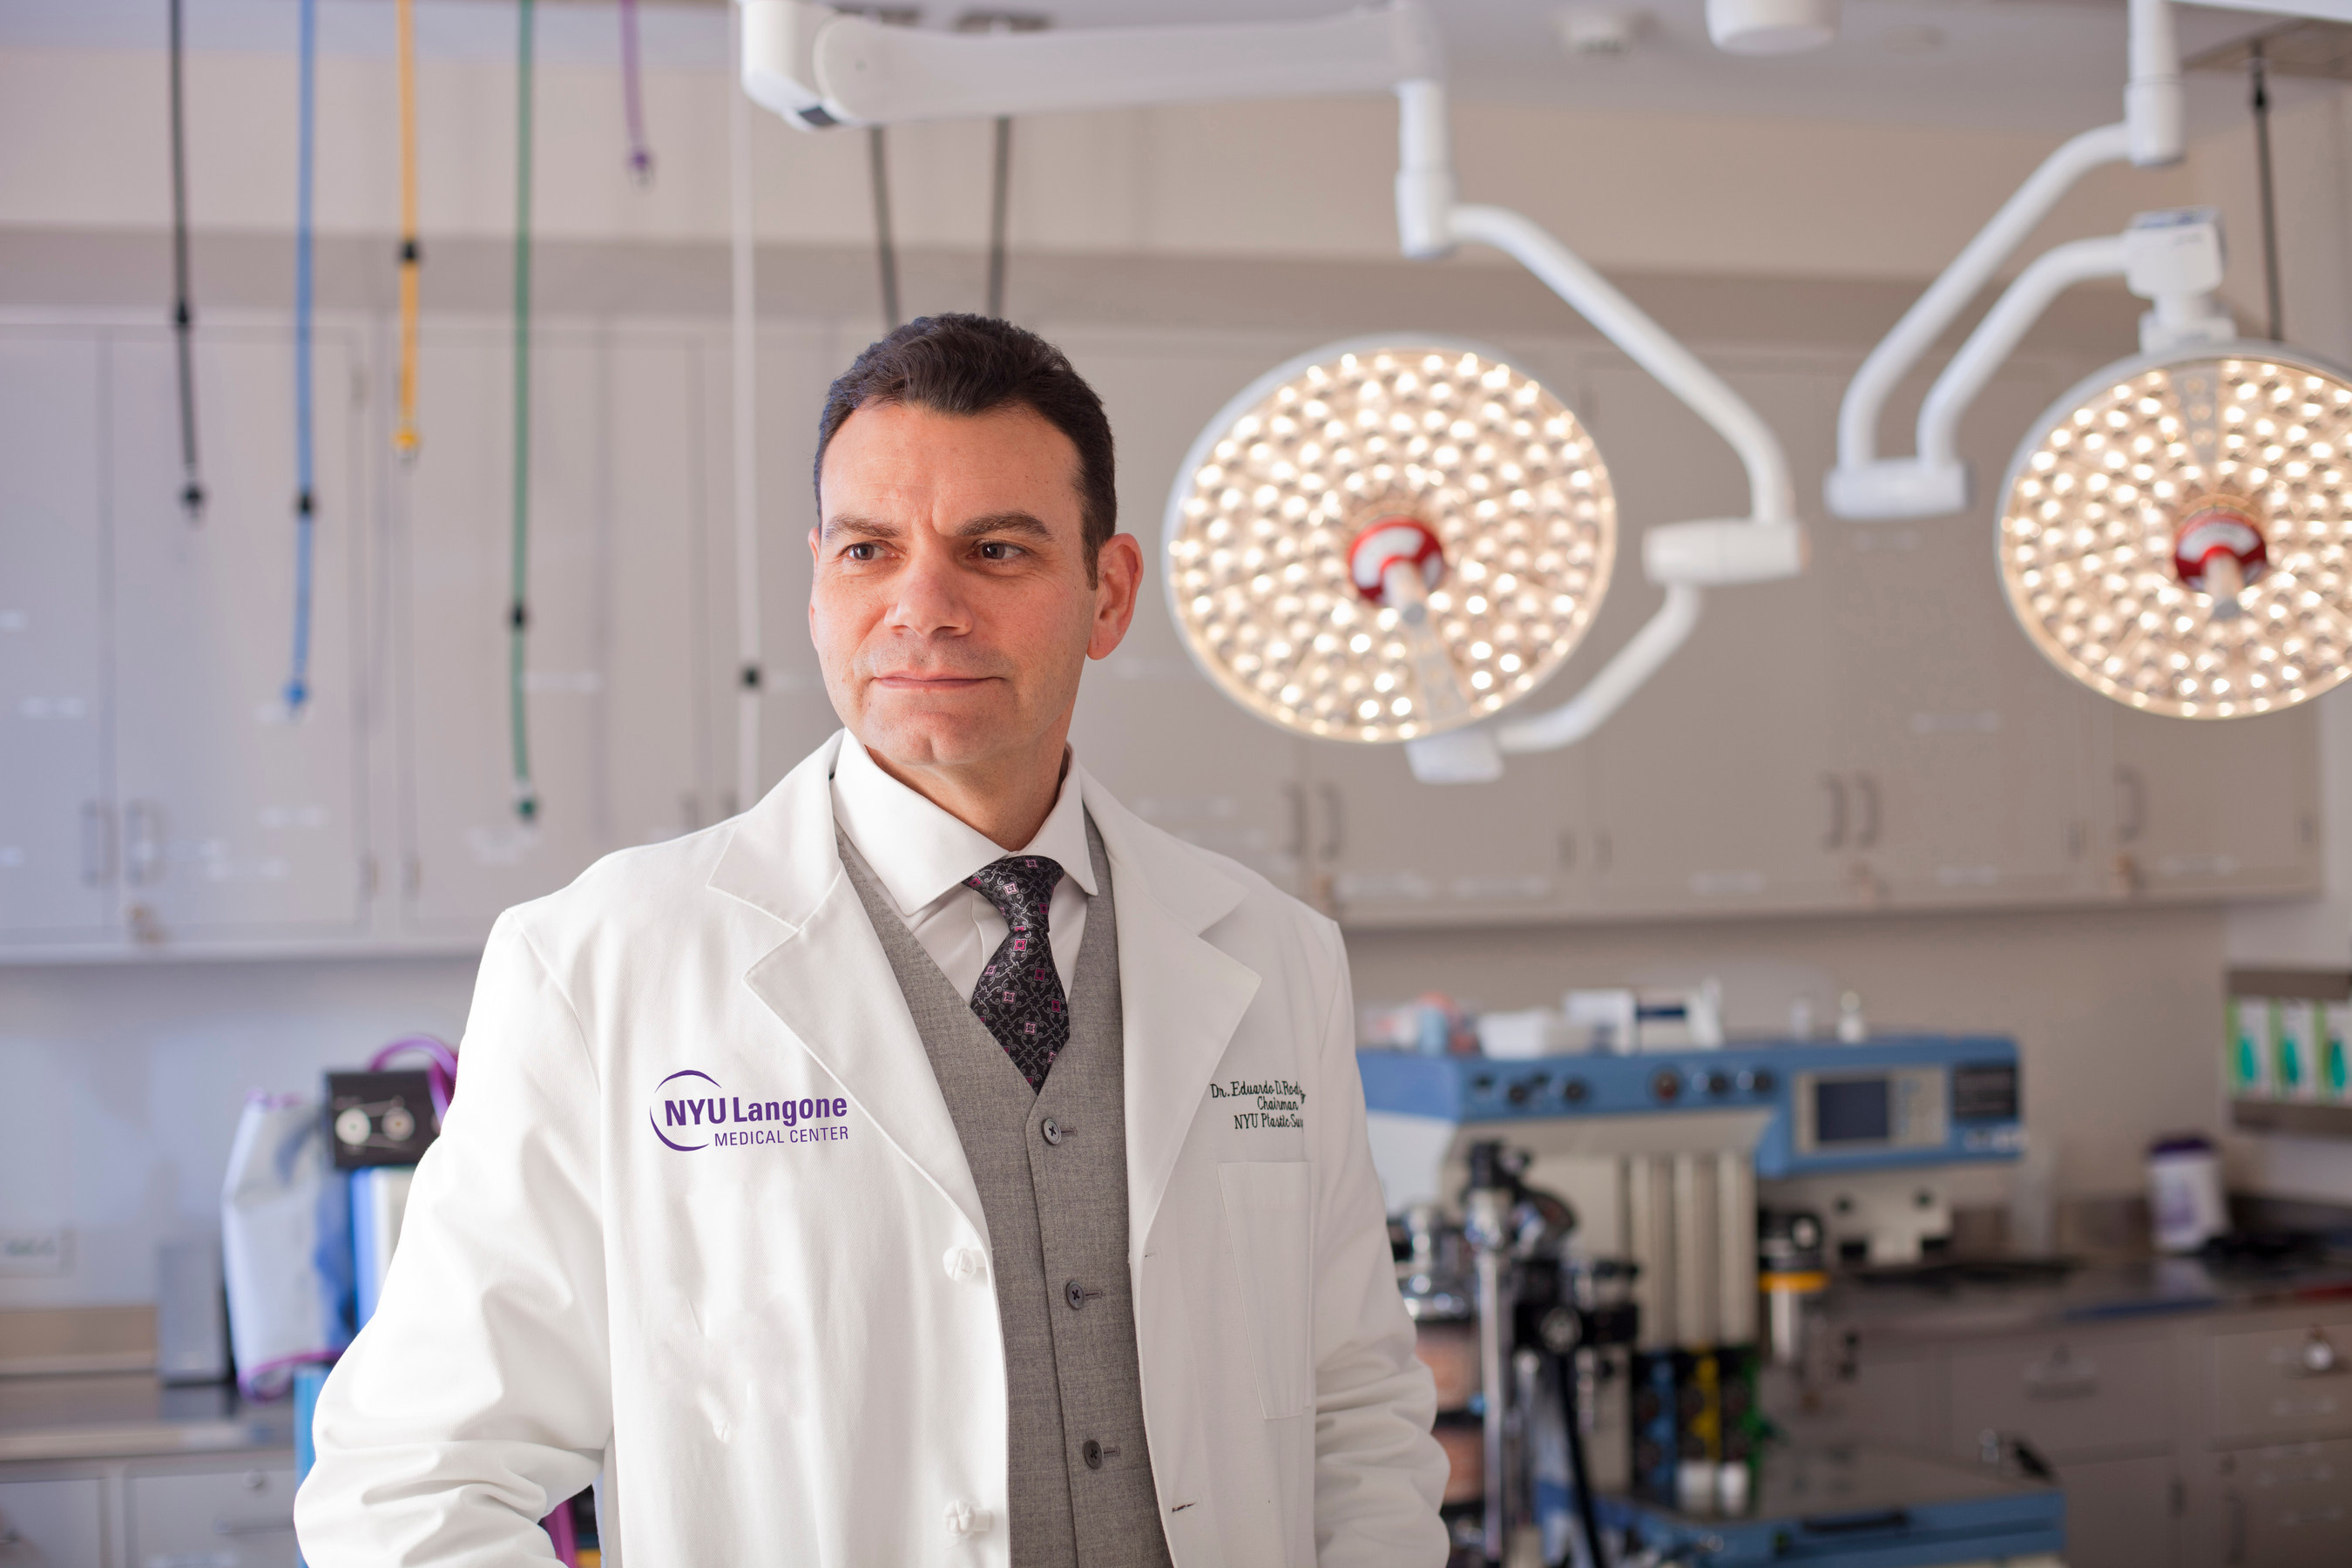 Surgeons at NYU Langone Medical Center Perform the Most